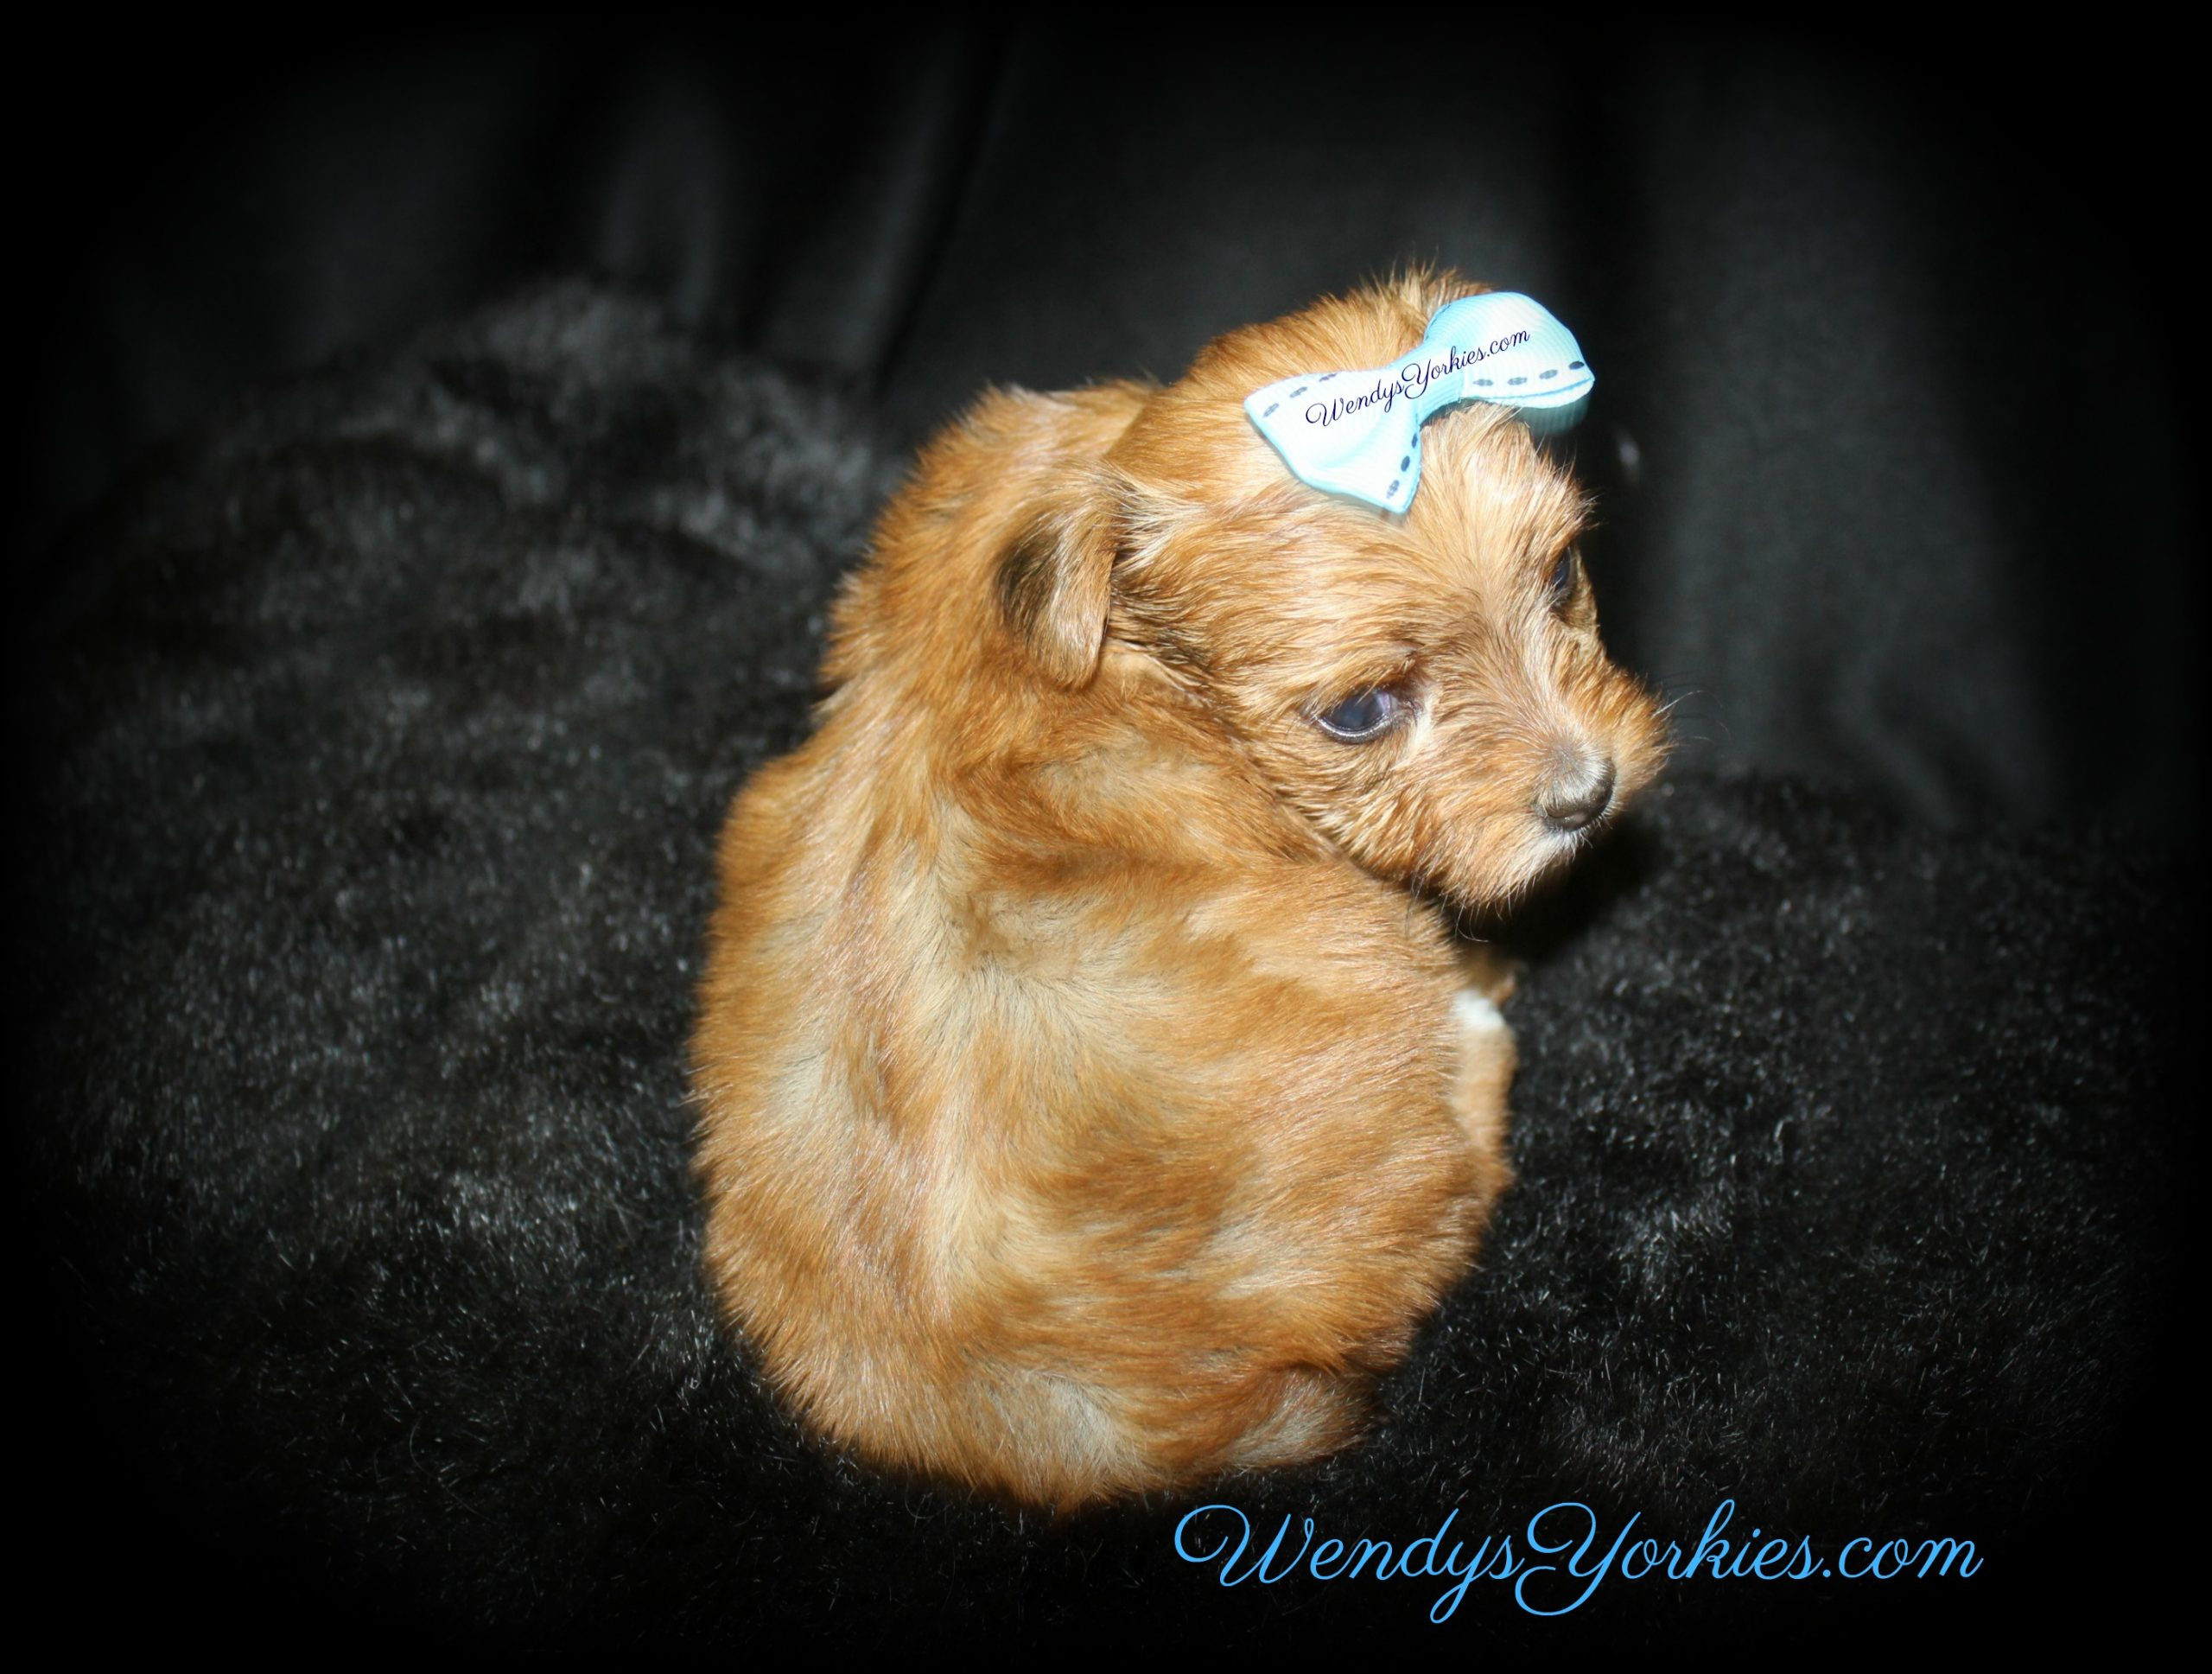 Teacup Blonde Yorkie puppy for sale, Lela m1, WendysYorkies.com